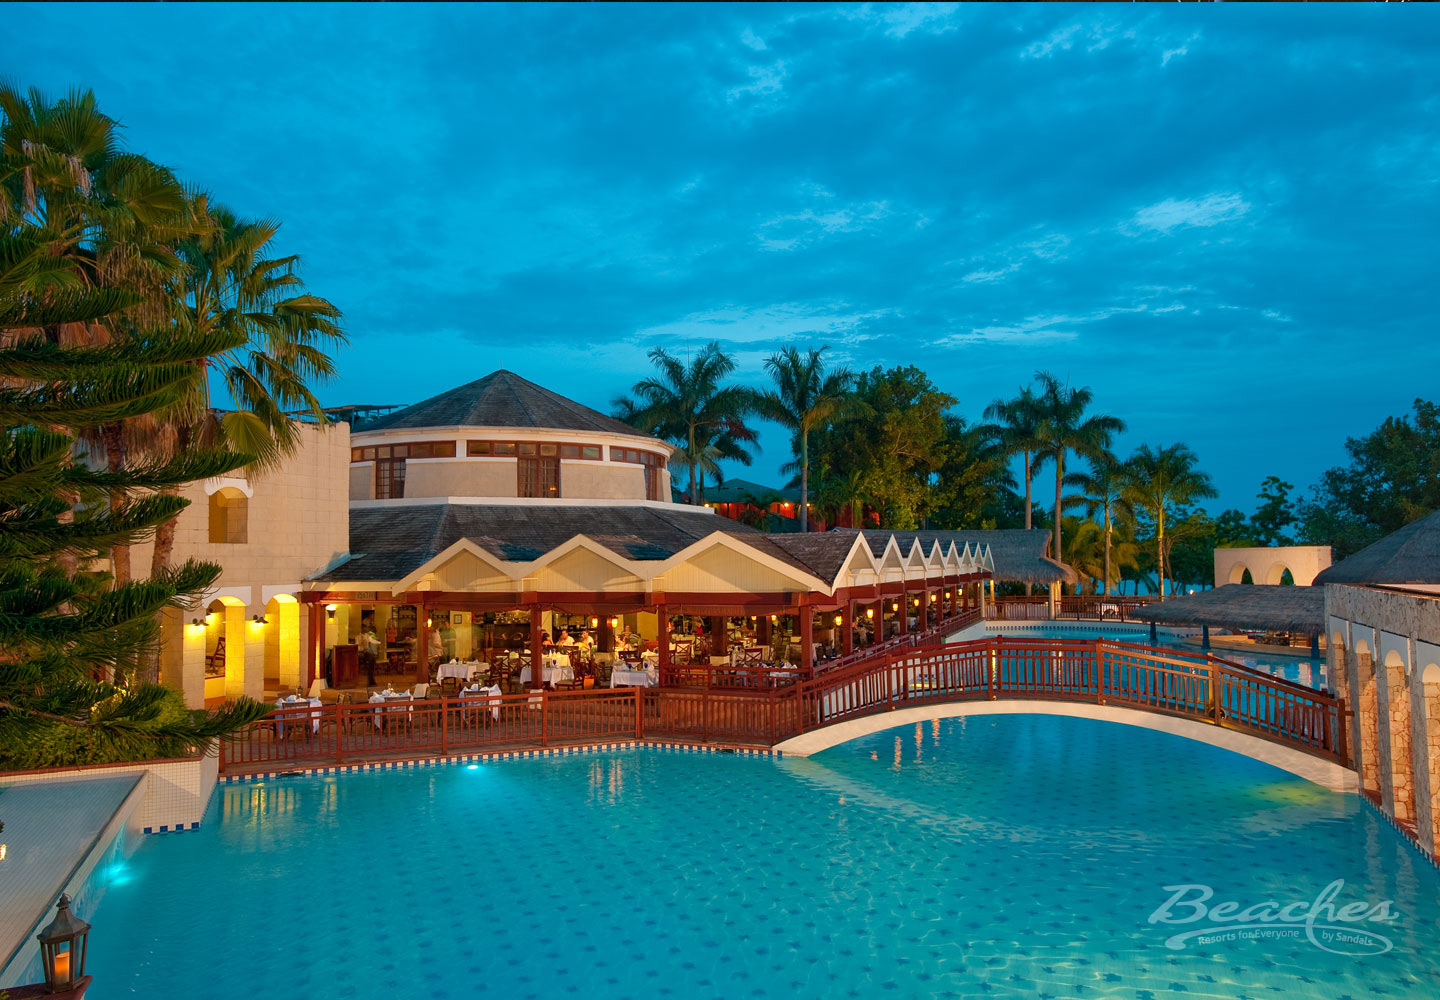 Travel Agency All-Inclusive Resort Beaches Negril 123